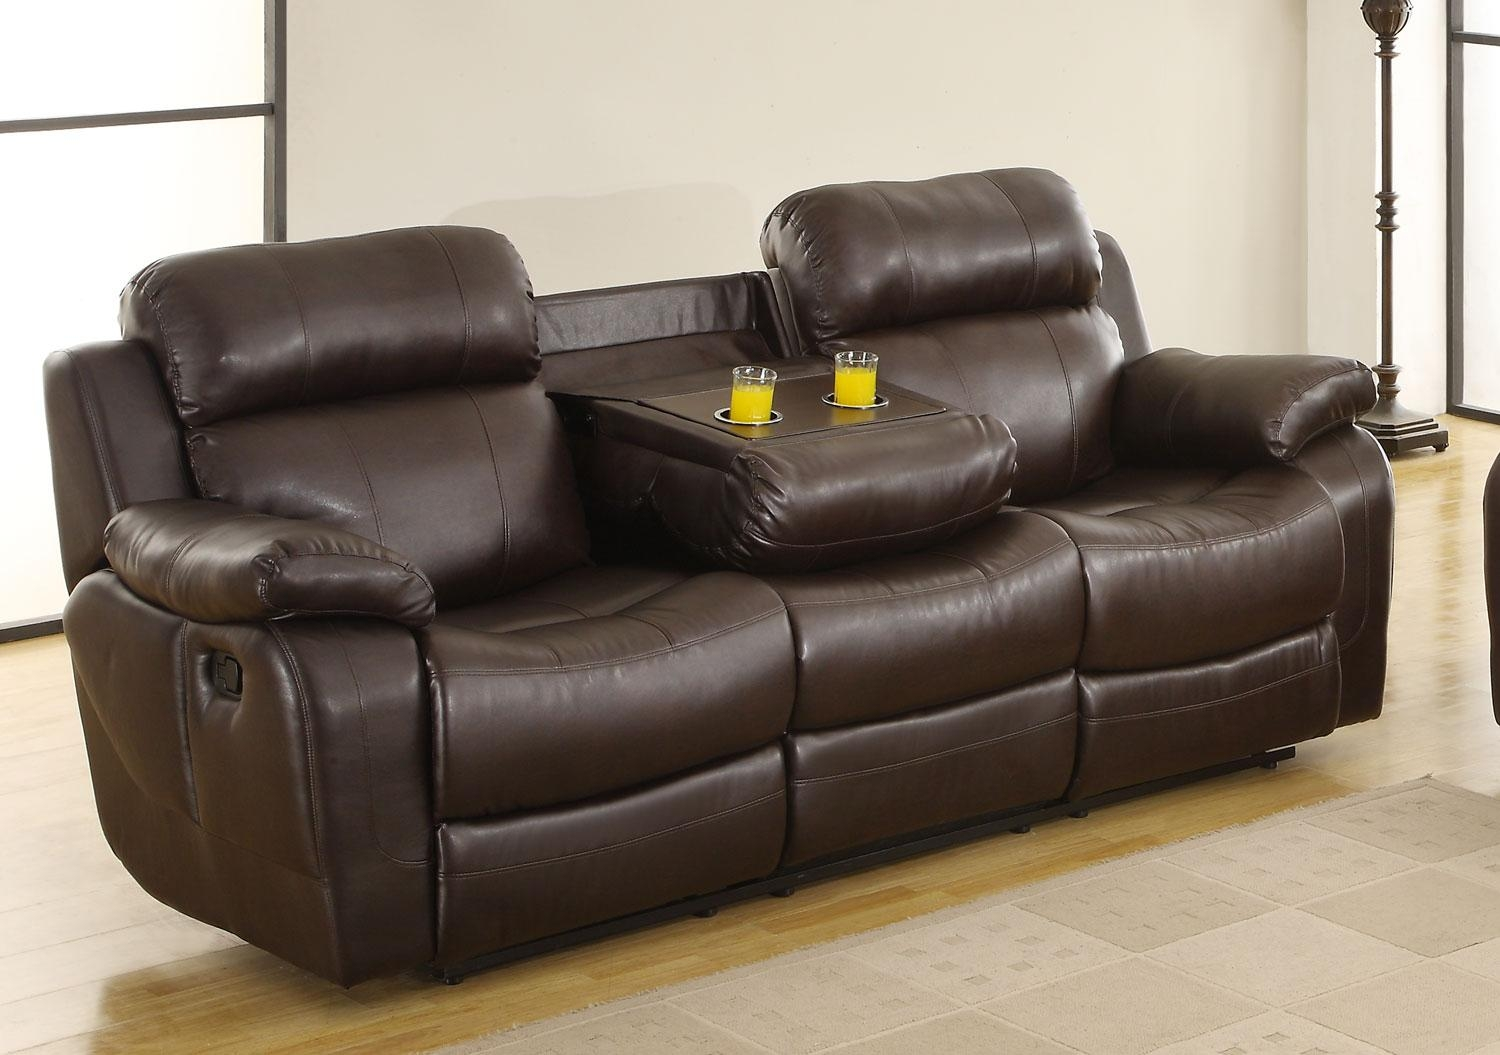 Homelegance Marille Sofa Recliner With Drop Cup Holder – Dark Intended For Sofas With Cup Holders (Image 7 of 20)